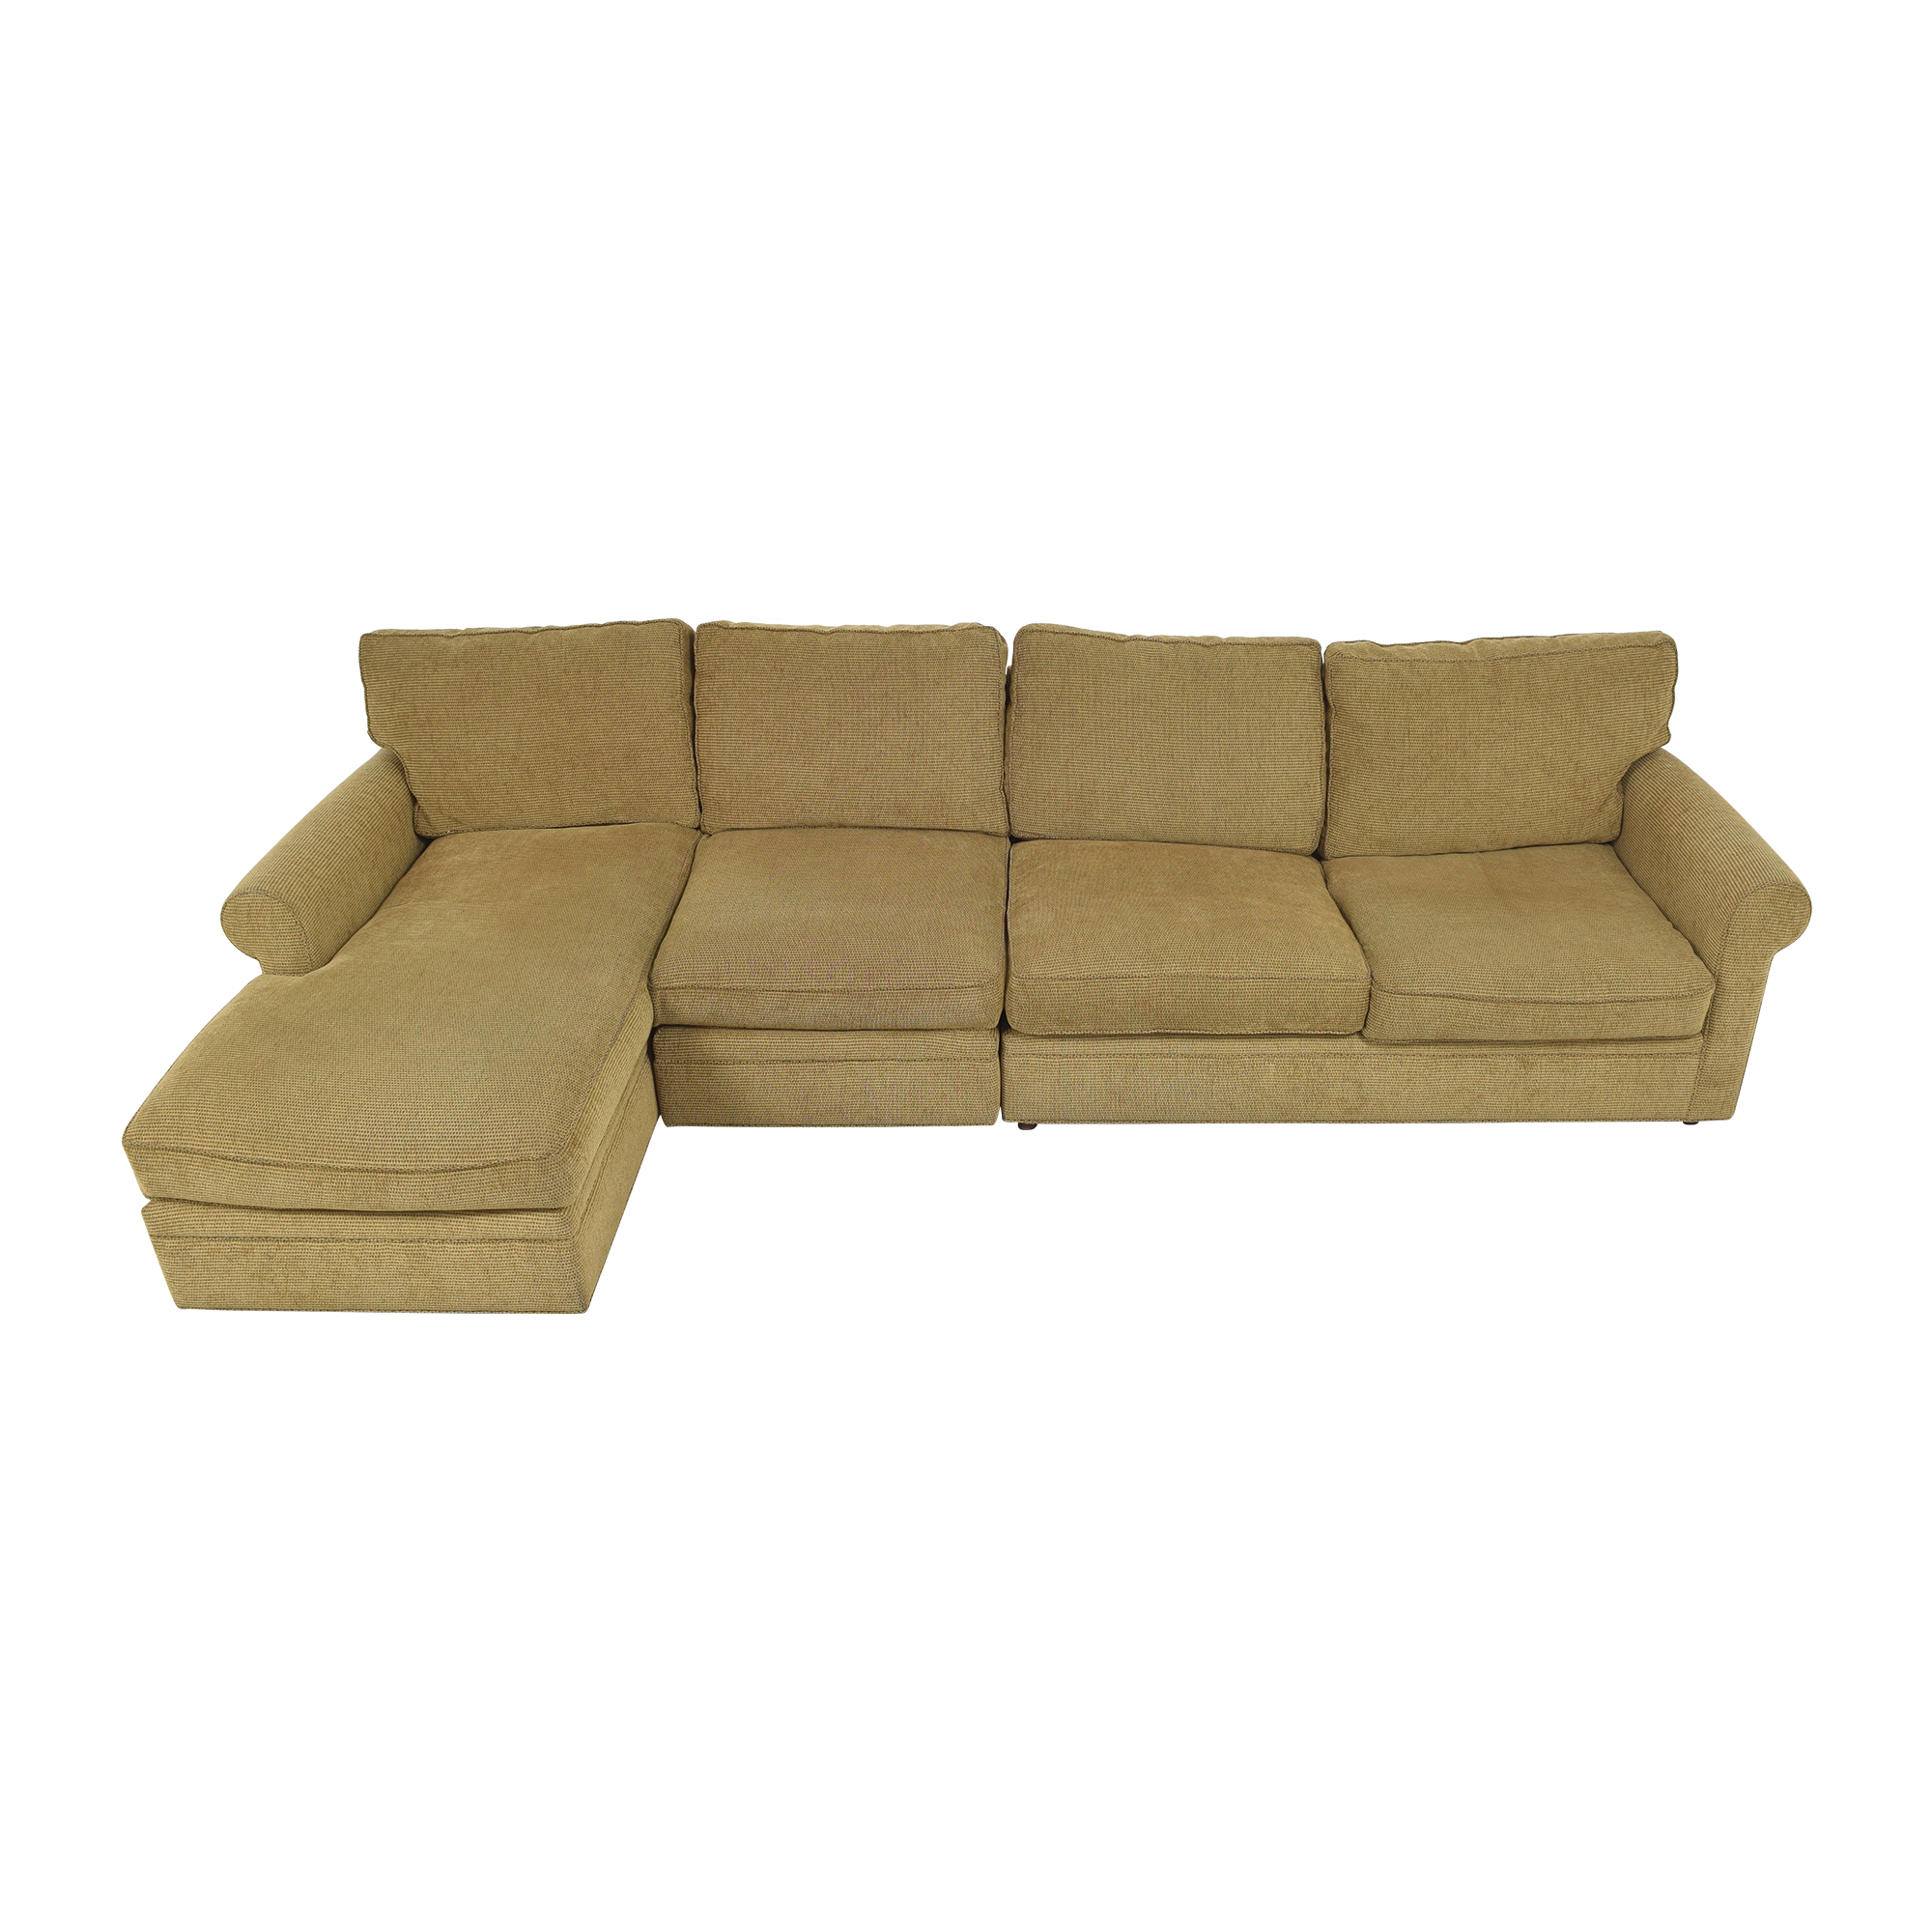 Crate & Barrel Crate & Barrel Chaise Sectional Sleeper Sofa Sectionals